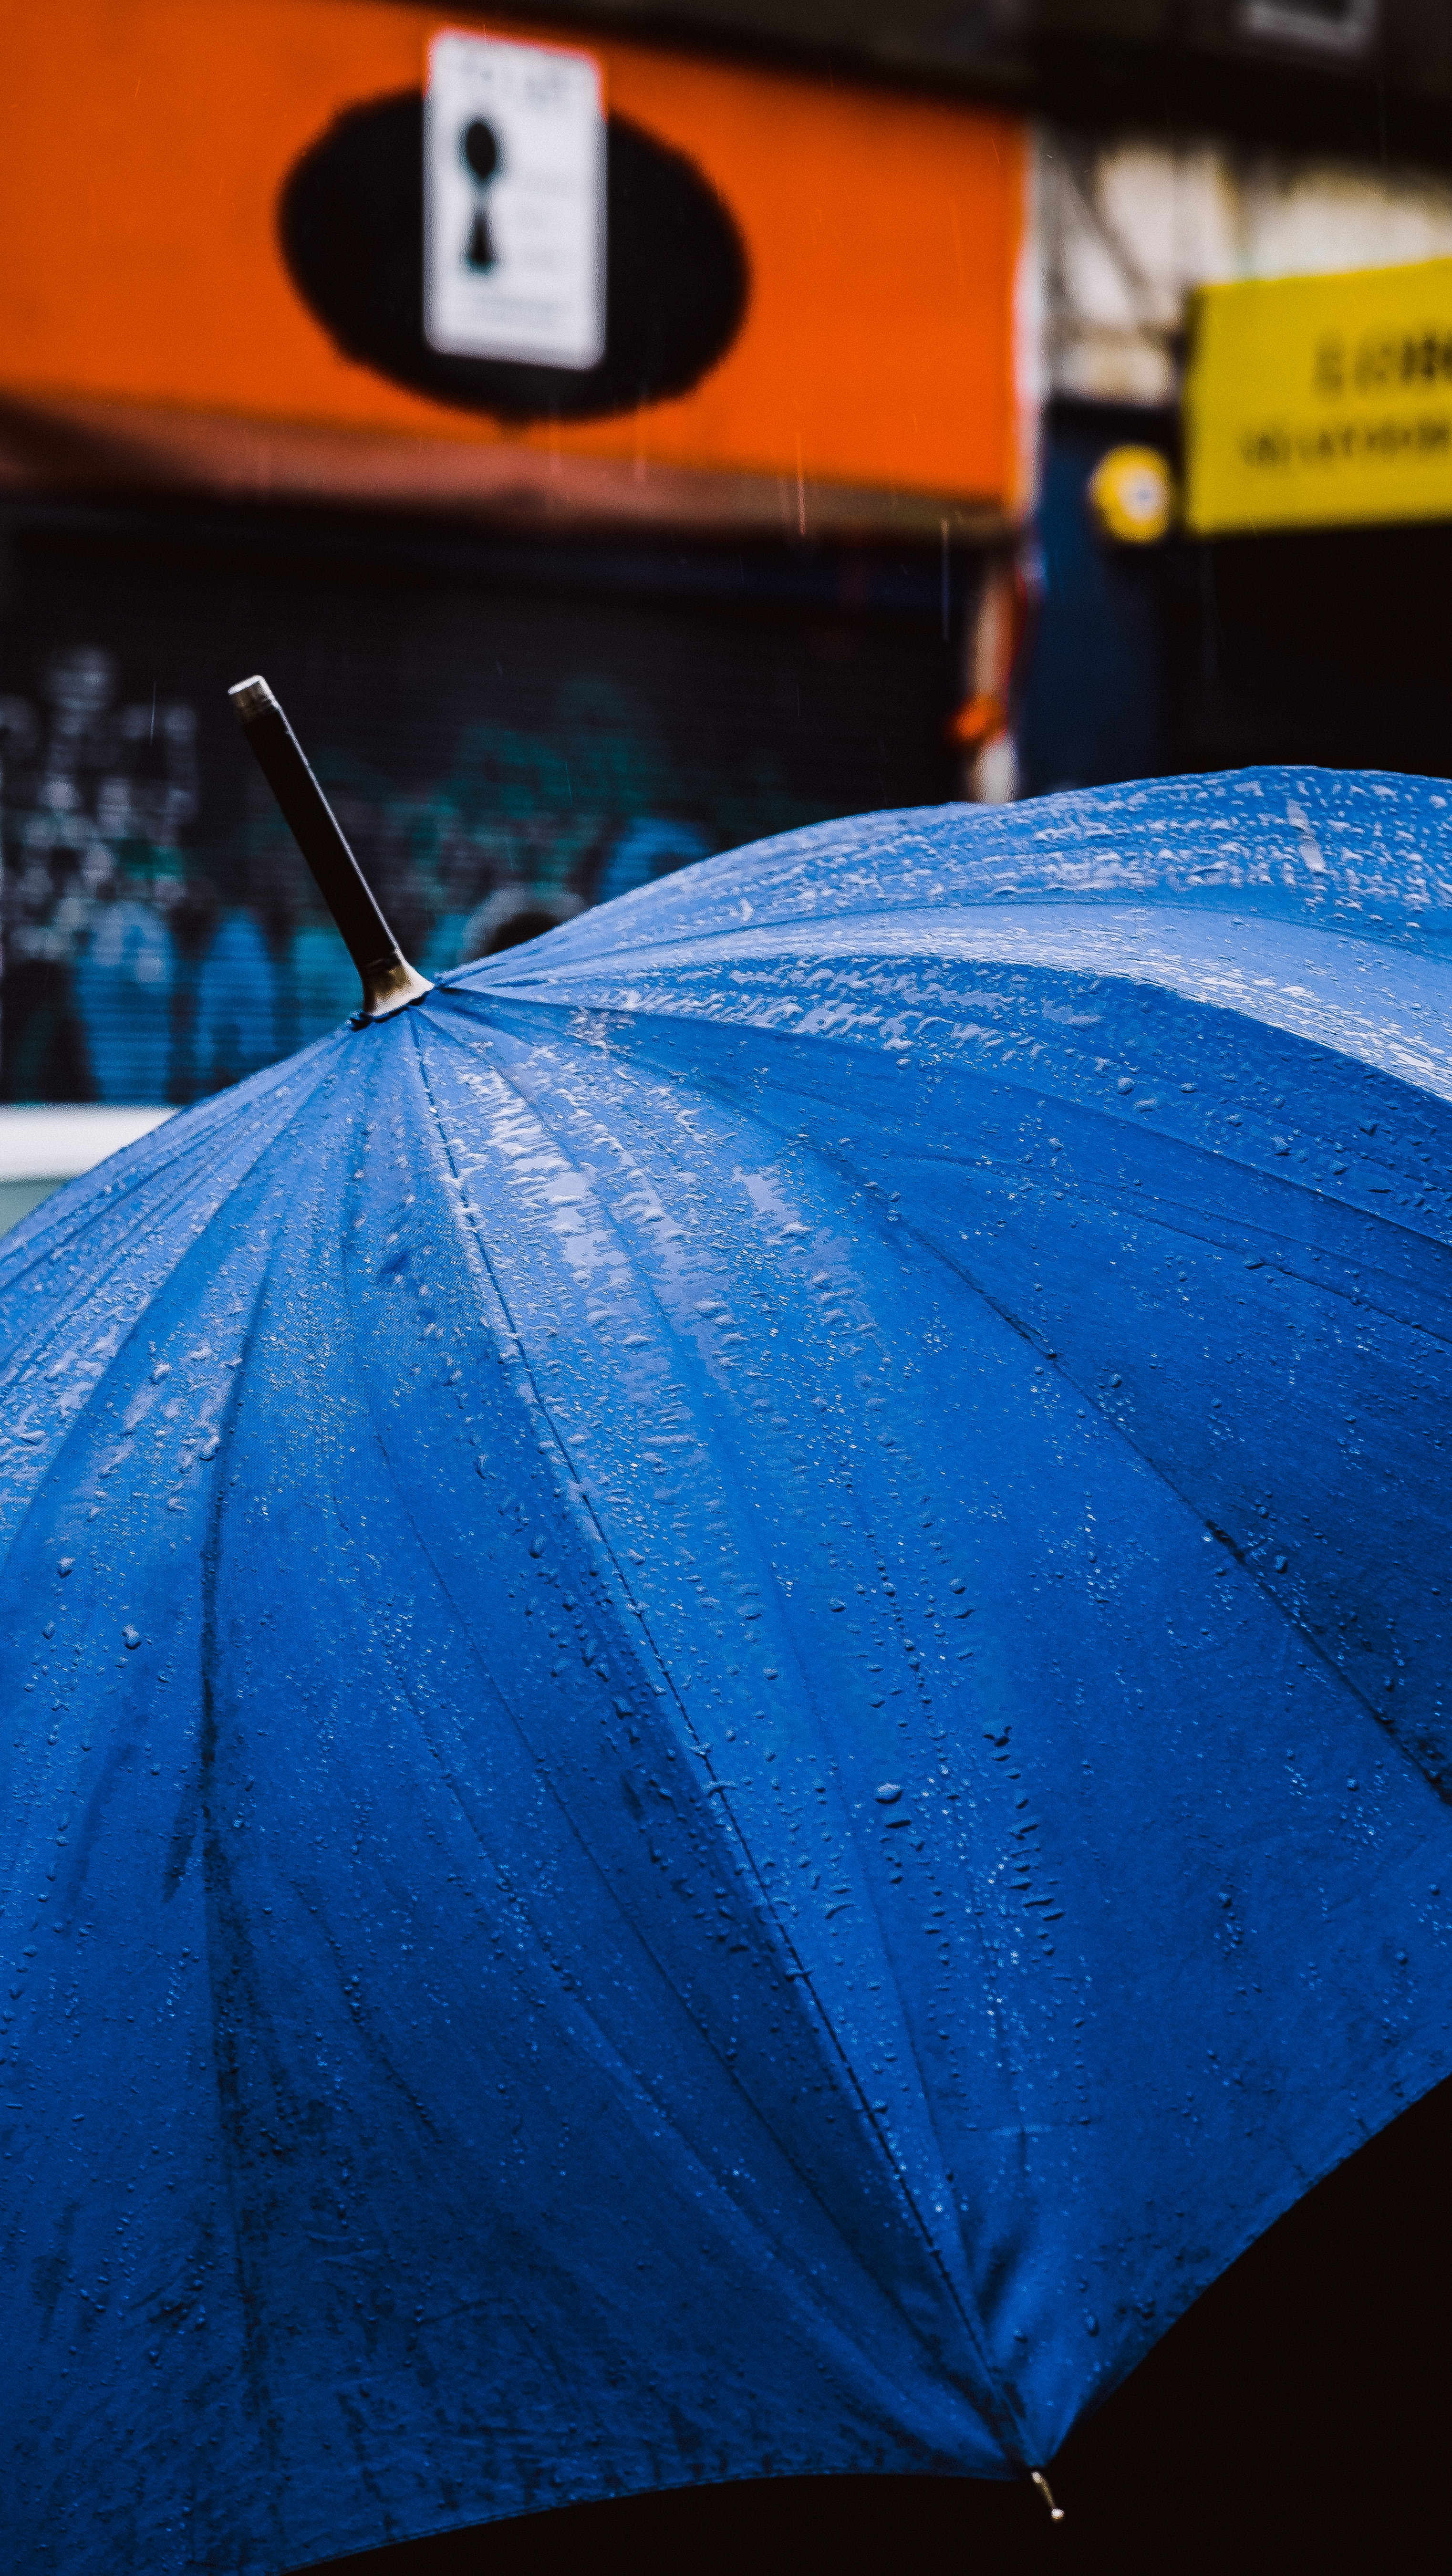 water droplets on blue umbrella